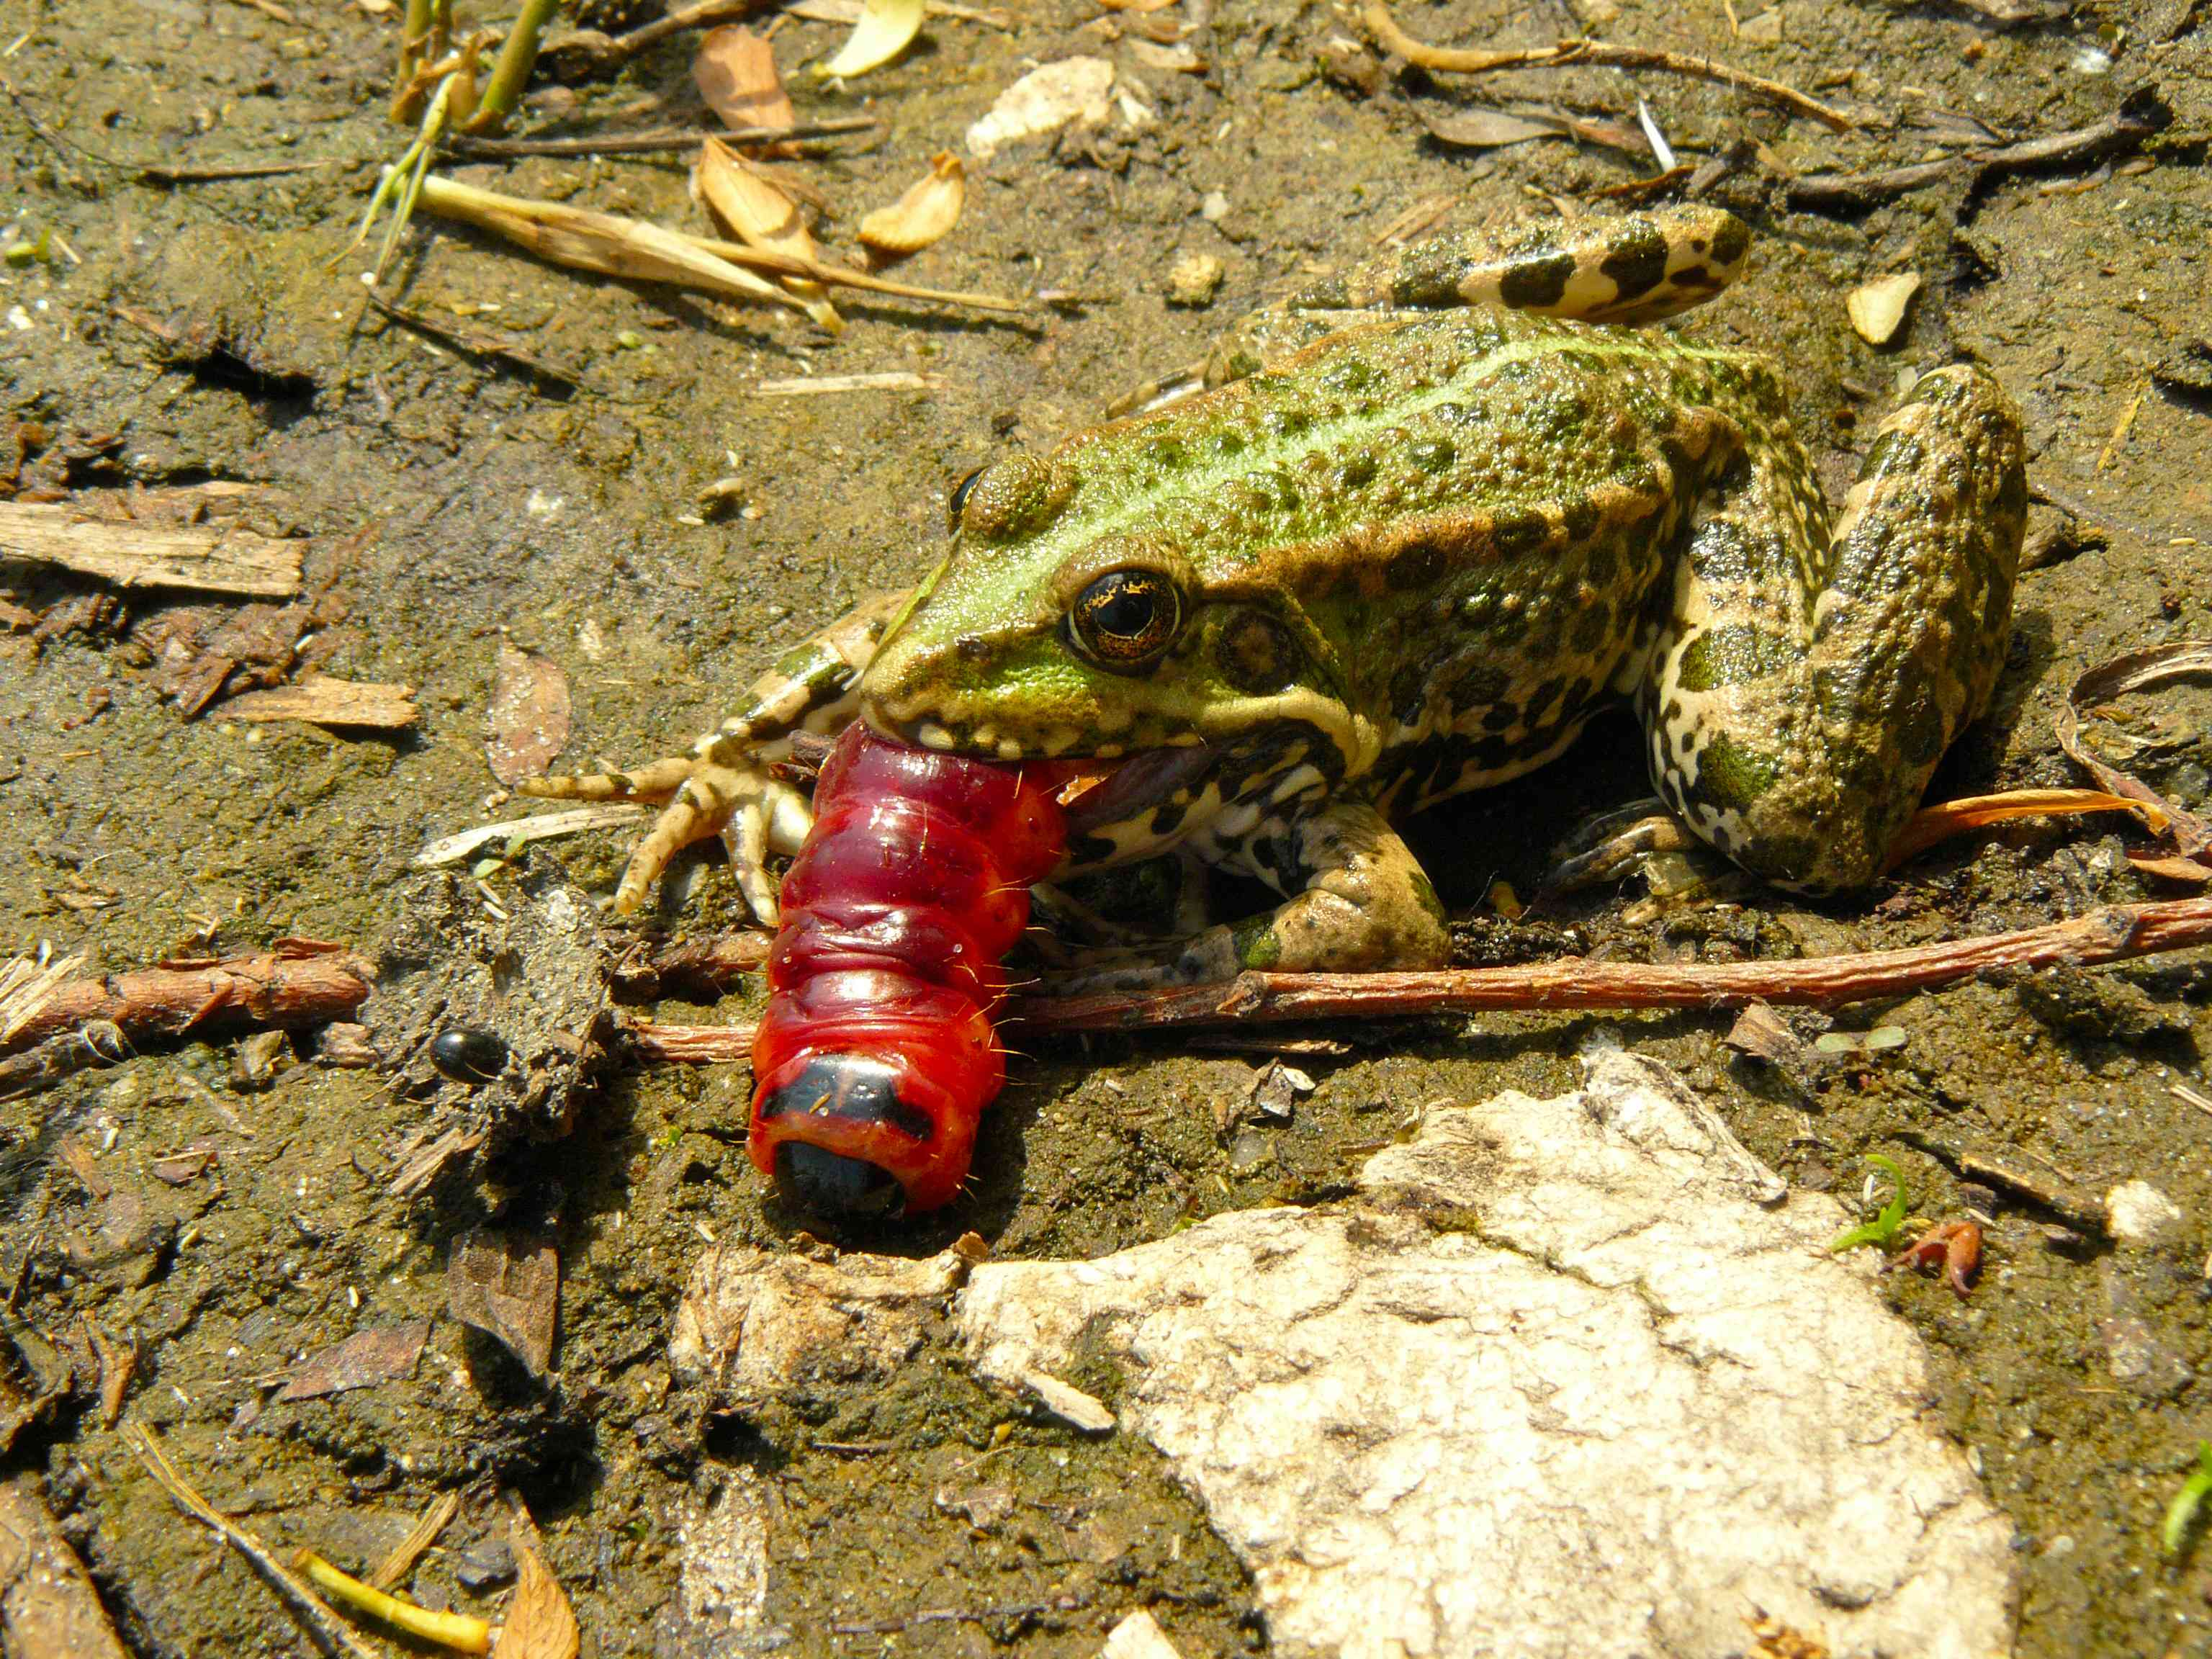 frog swallowing red caterpillar whole